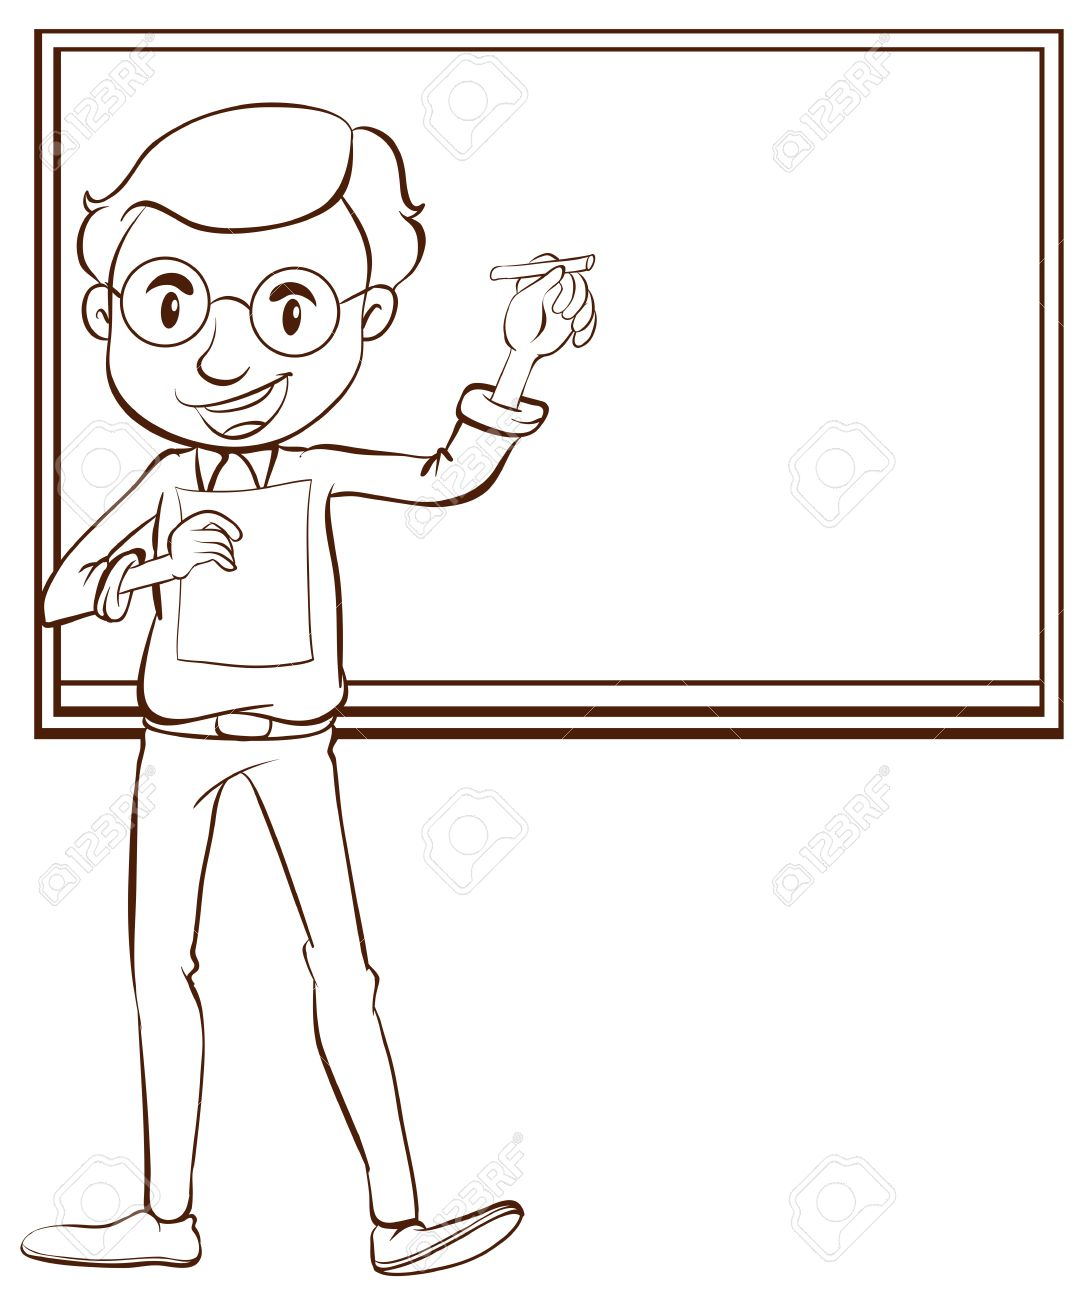 Teacher Drawing - Cliparts.co